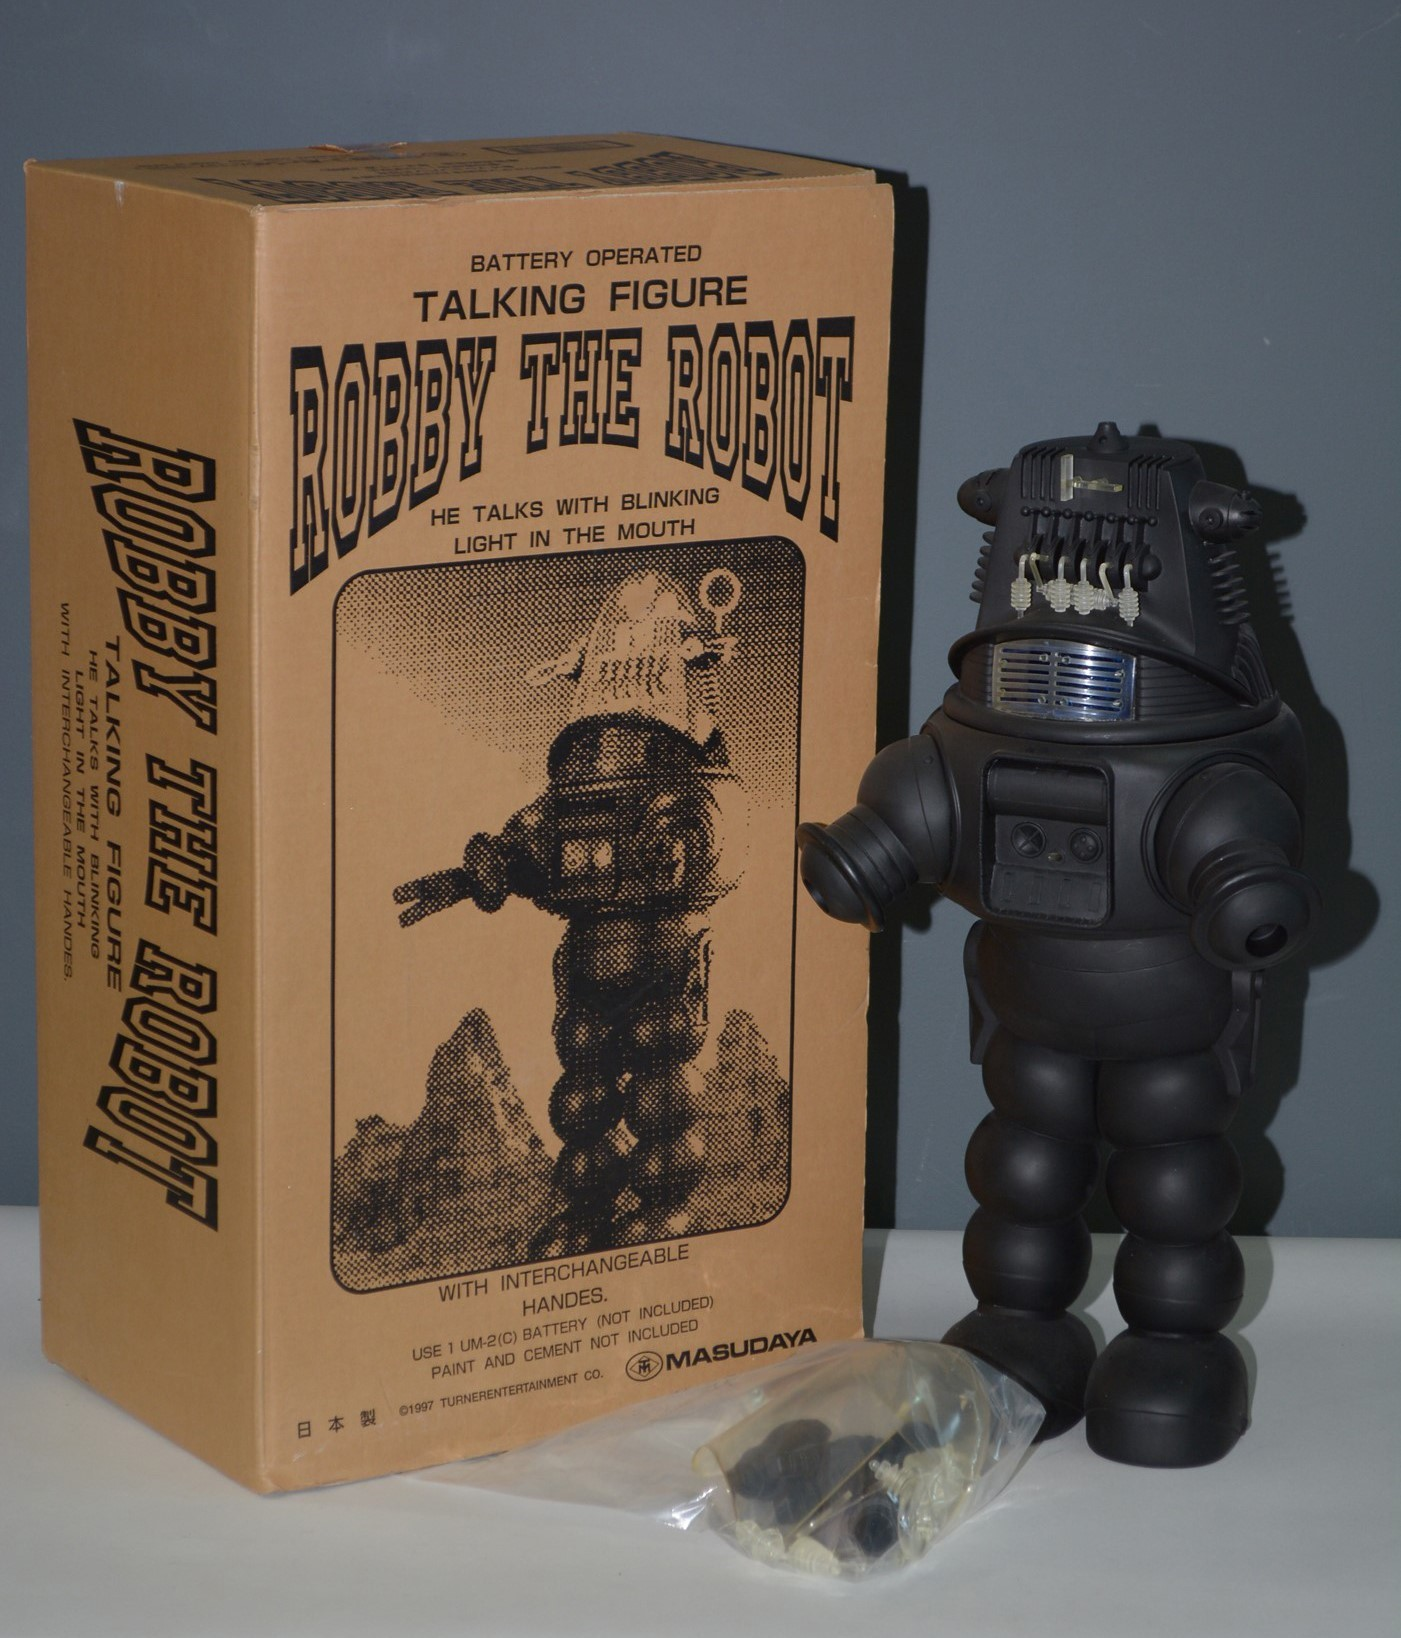 Robby the talking Robot by MT Masudaya,